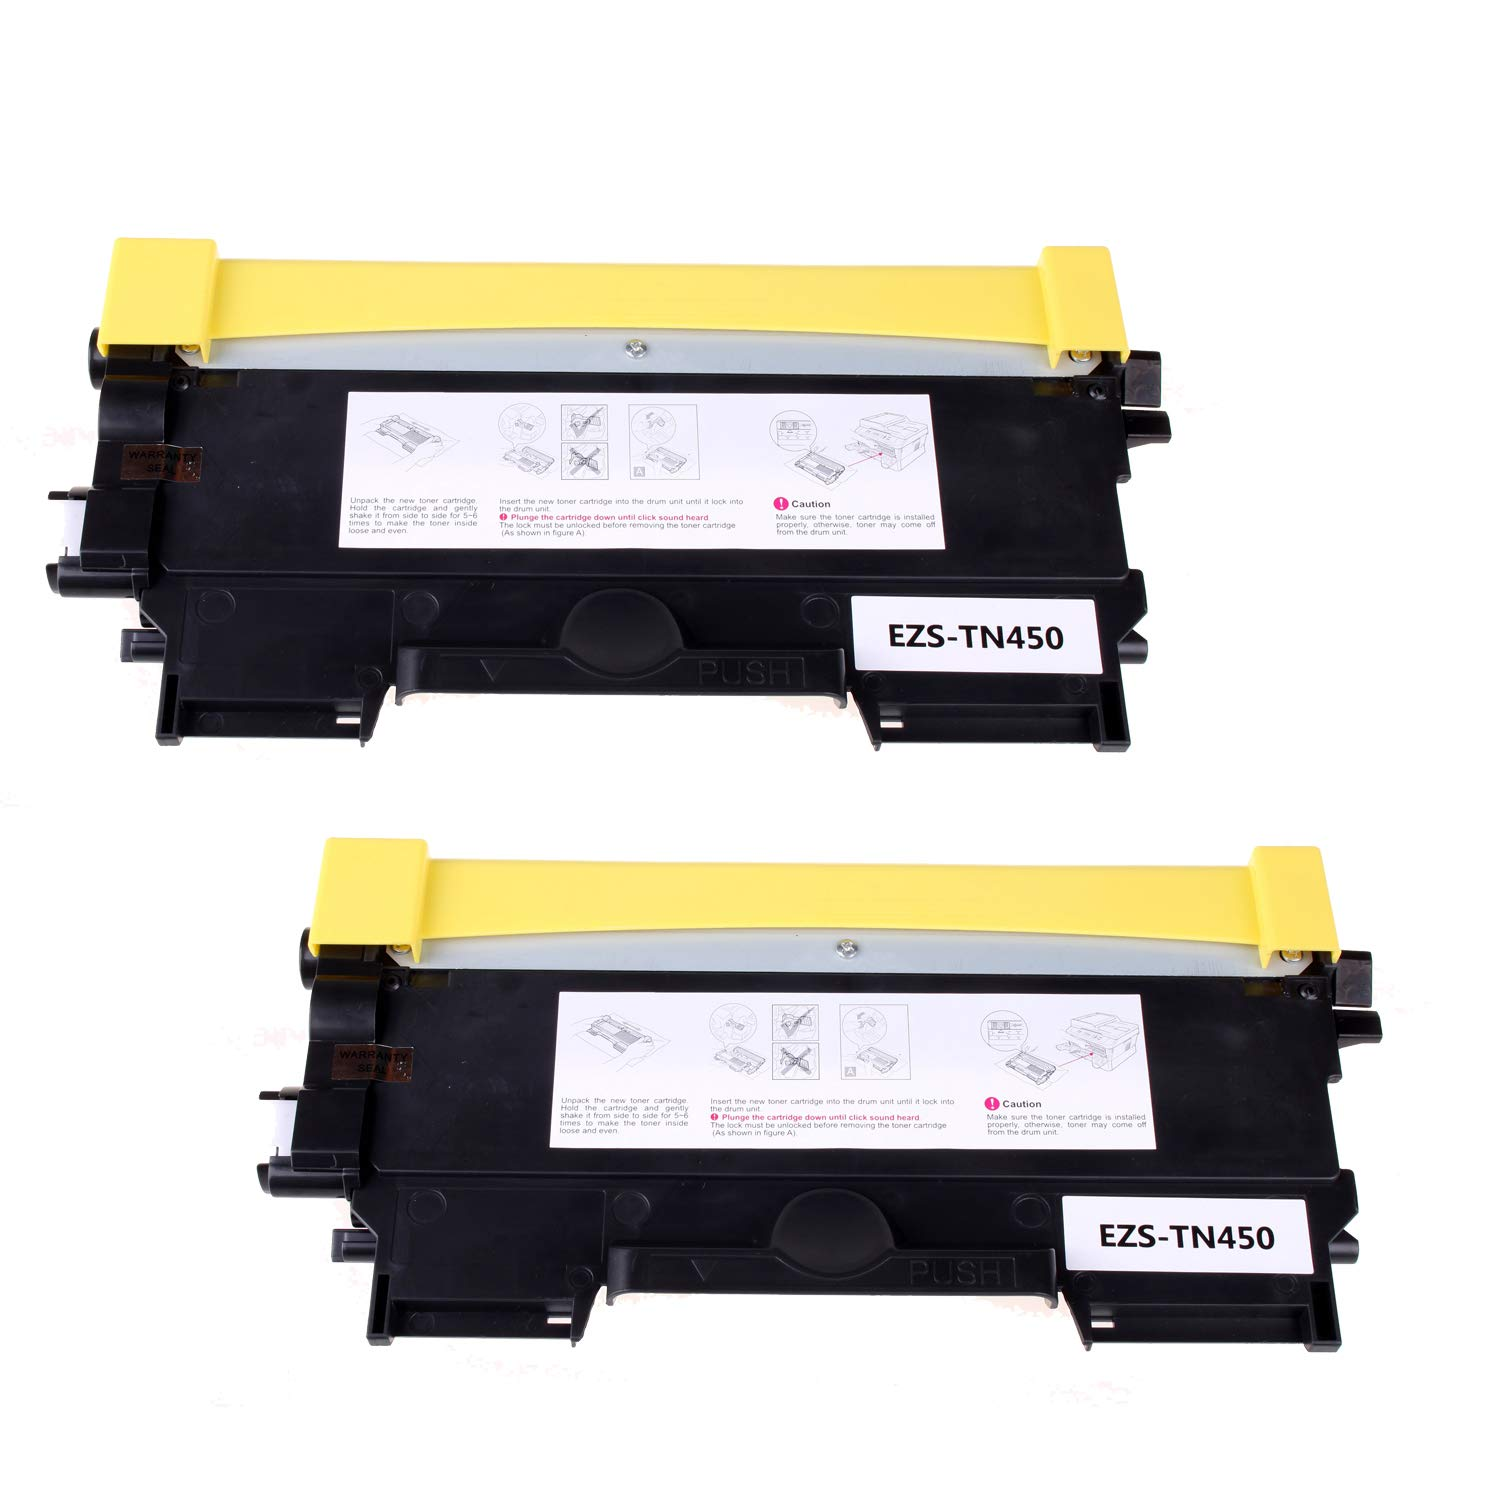 ZQL TN450 TN-450 Compatible Toner Cartridges Brother HL-2240 HL-2240D HL-2270DW HL-2280DW MFC-7240 MFC-7460DN MFC-7860DW Black, High Yield, 2 Pack